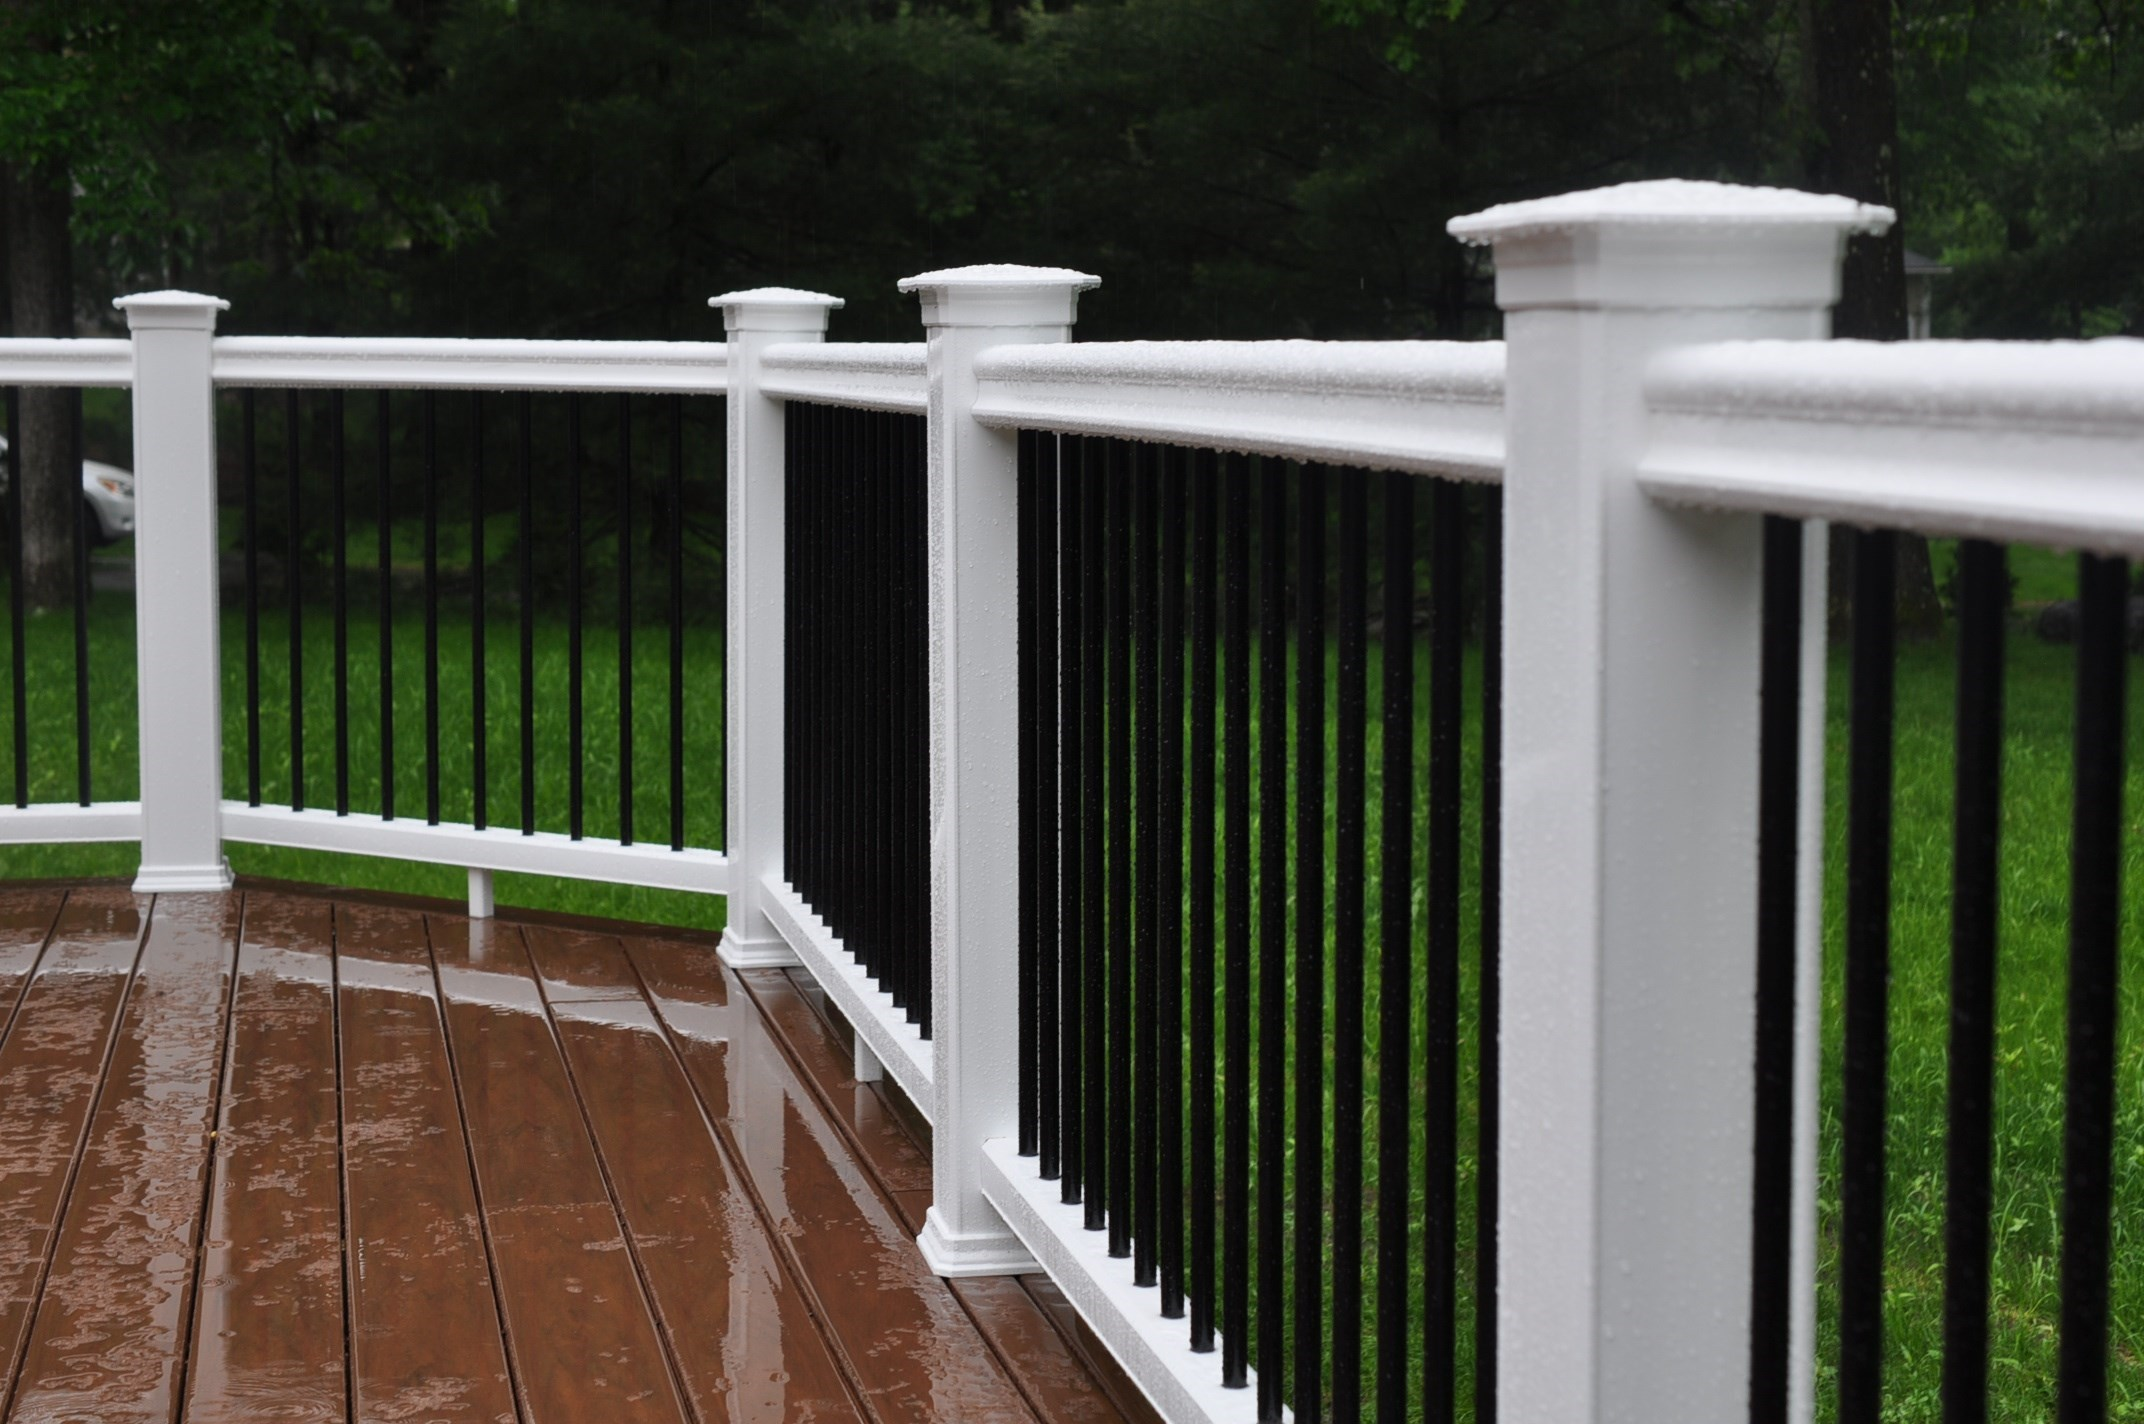 Installing Vinyl Fence Posts Without Concrete Decks & Railings | Shiretown Home Improvements & Glass